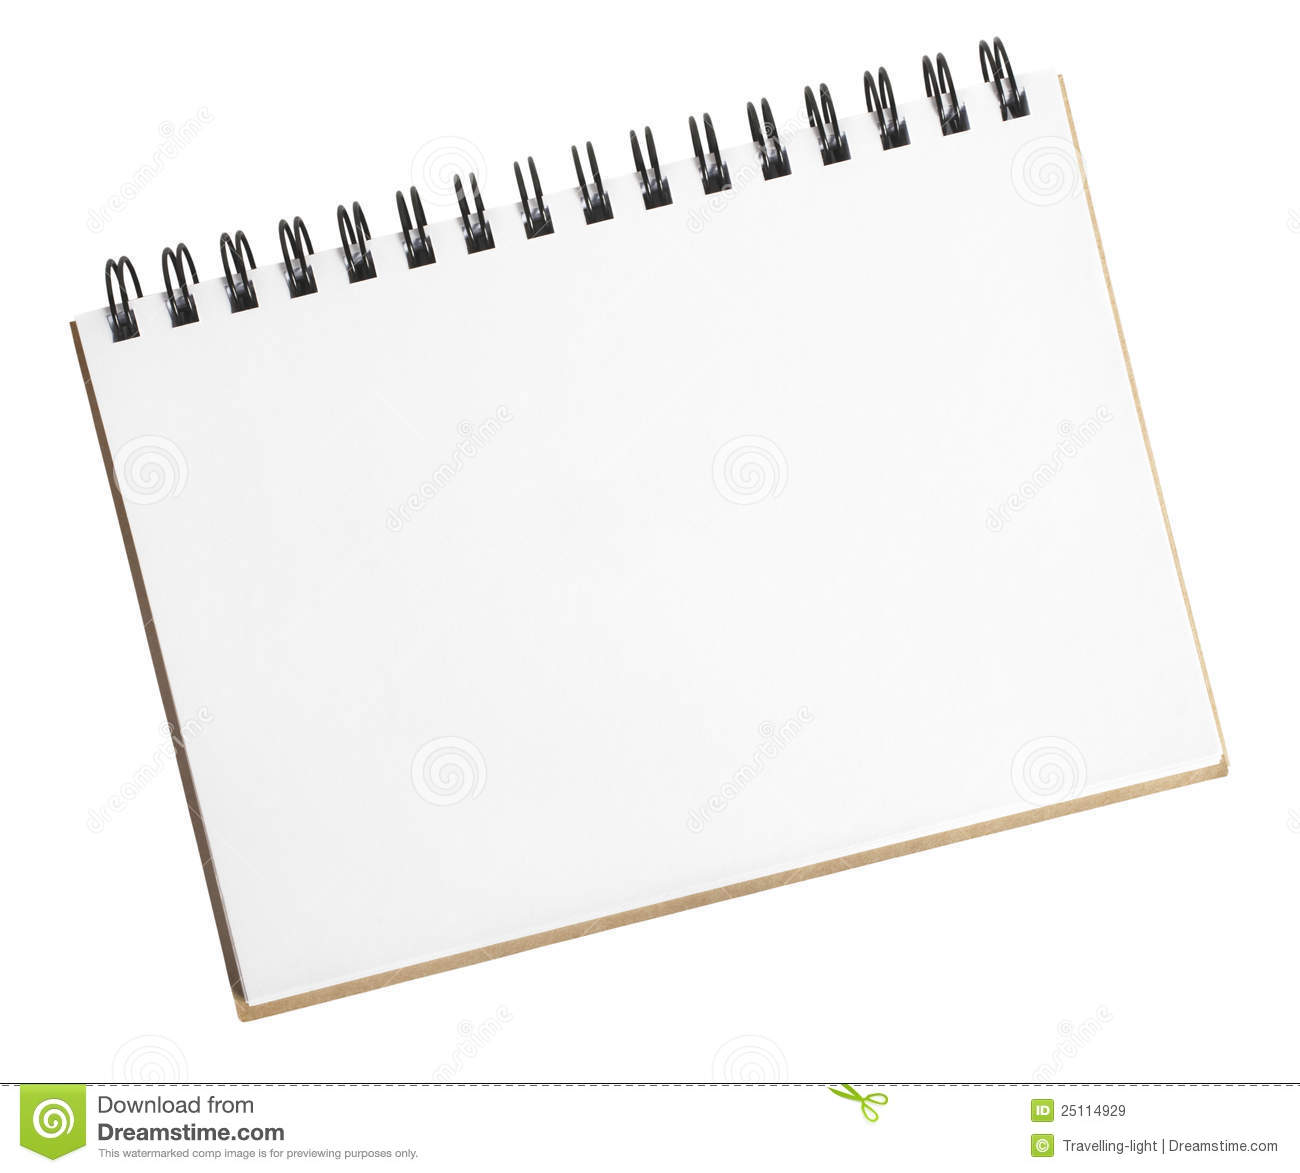 Royalty Free Stock Images Small Sketch Pad Image25114929 further 2014 Lamborghini Aventador Coloring Pages Sketch Templates together with Search Vectors as well Nadezhda Shpiiakina further Clocks. on gear clip art colorful